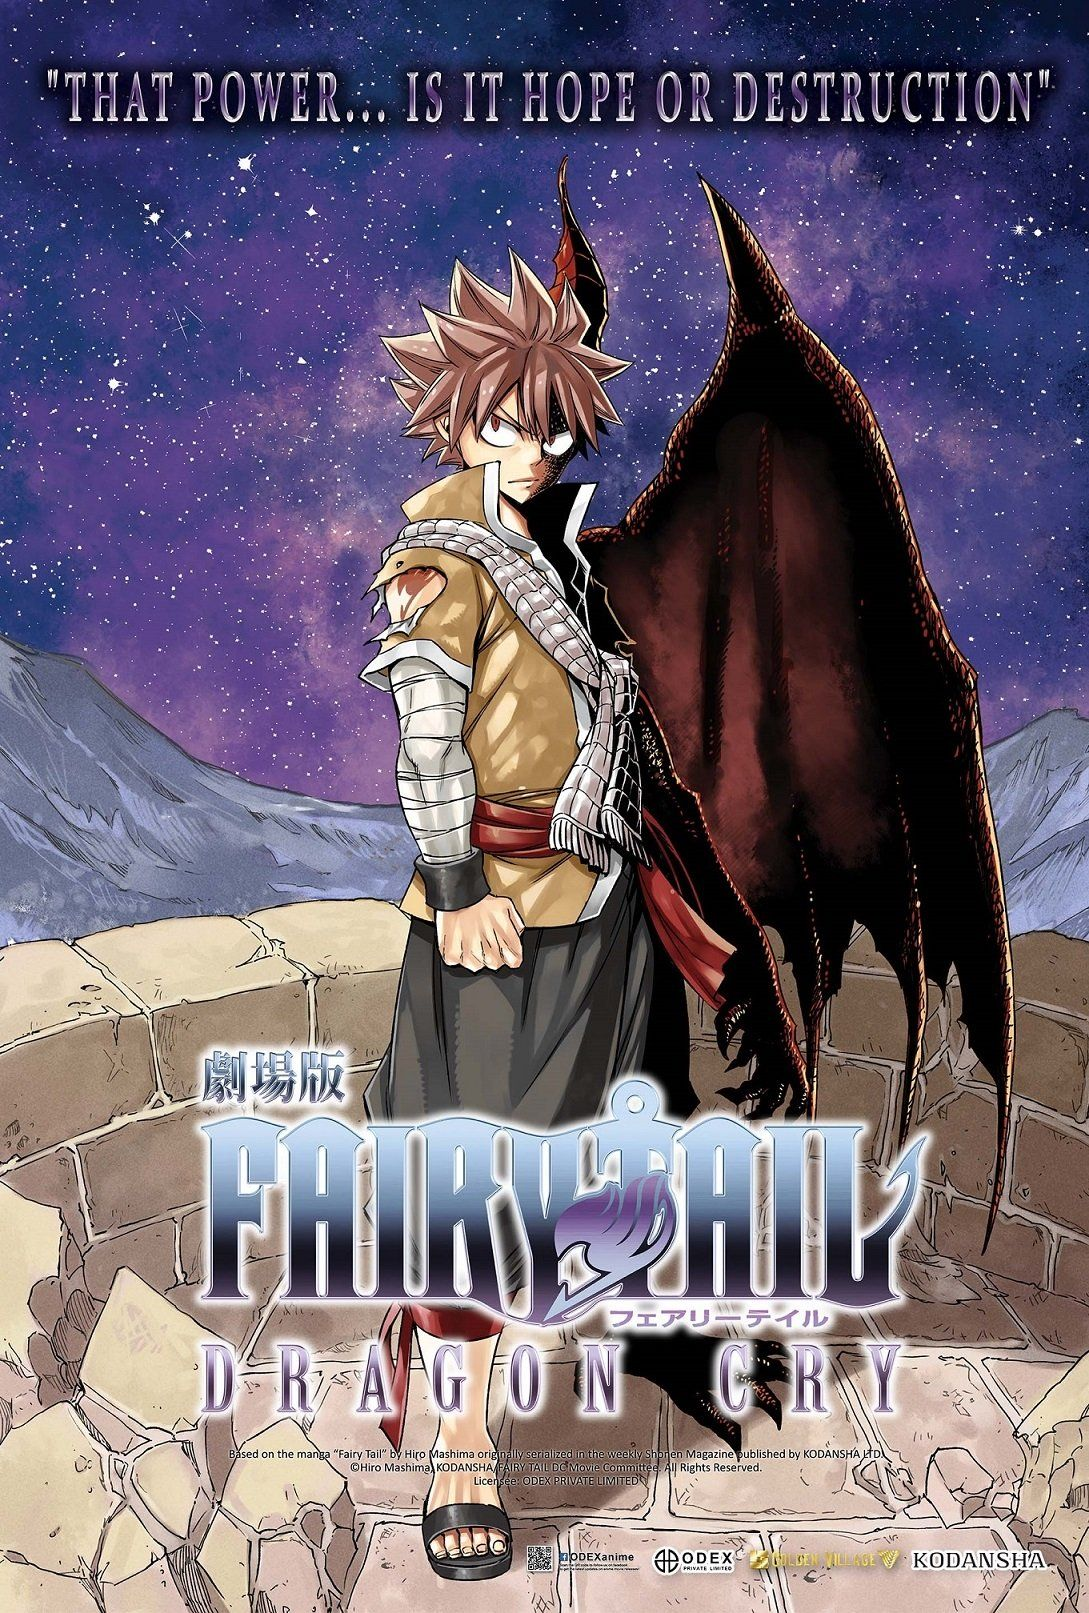 Fairy Tail Dragon Cry movie gets fan screening in GV